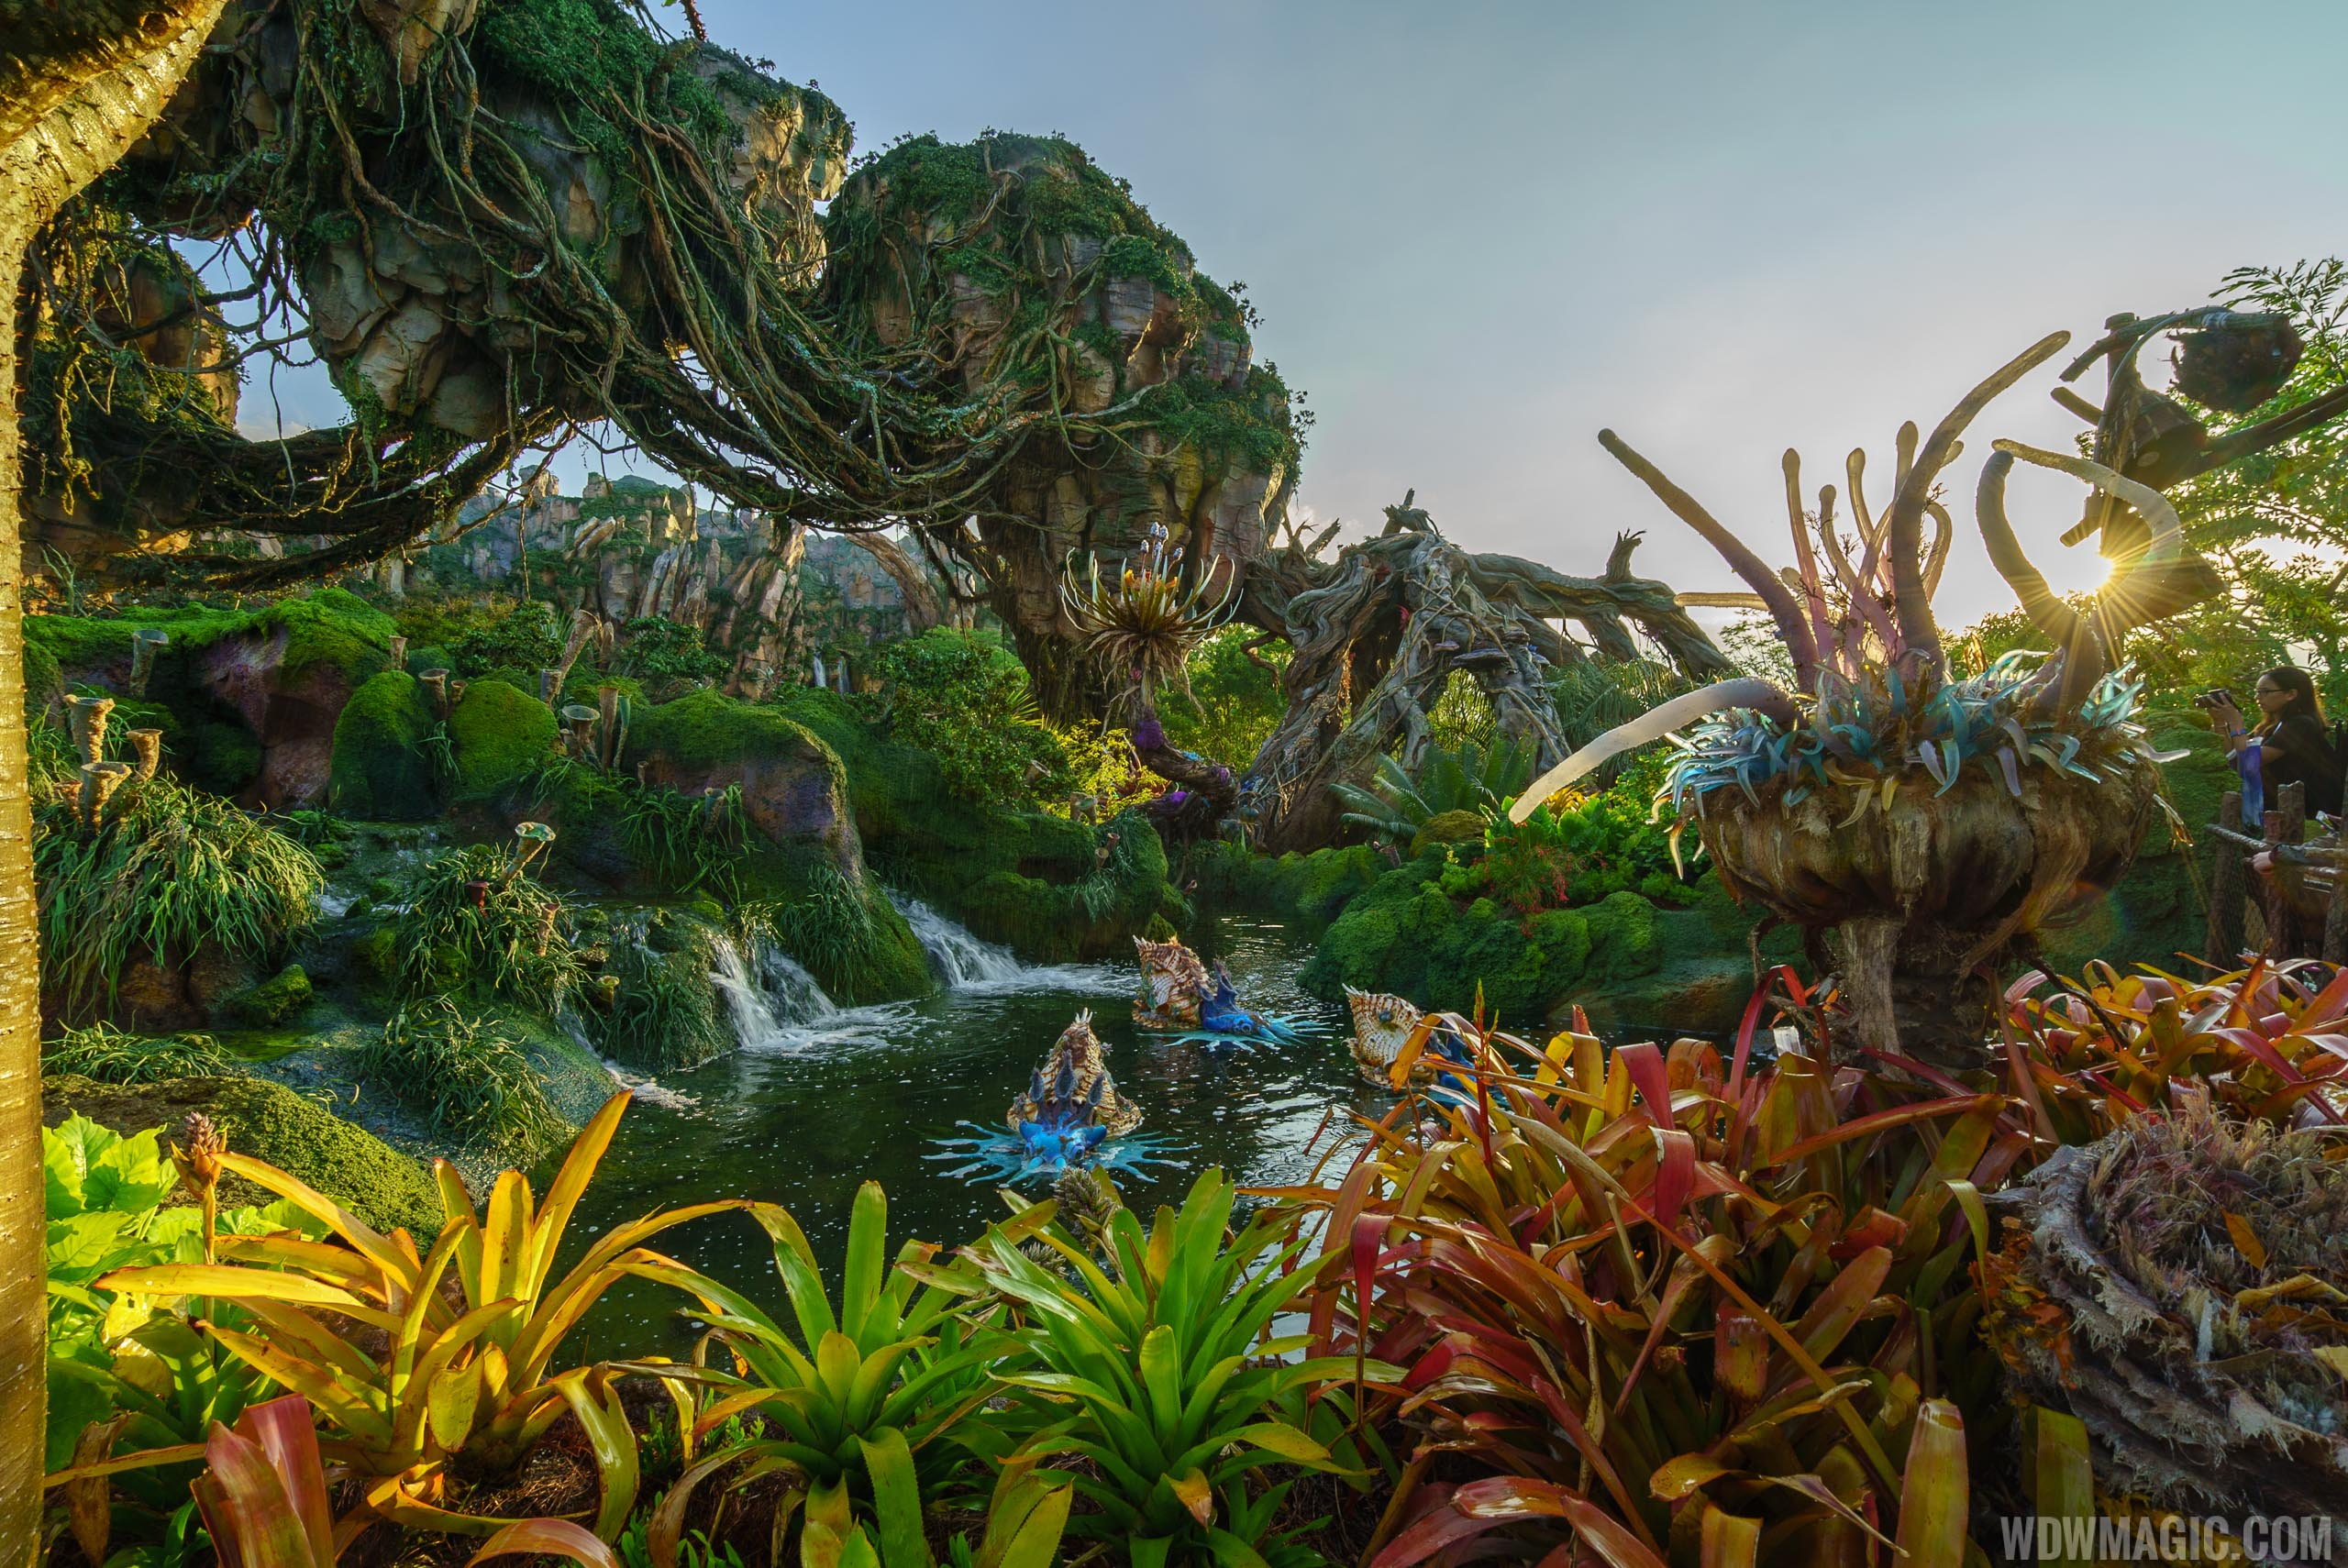 Pandora - The World of Avatar can be experienced as part of Disney After Hours